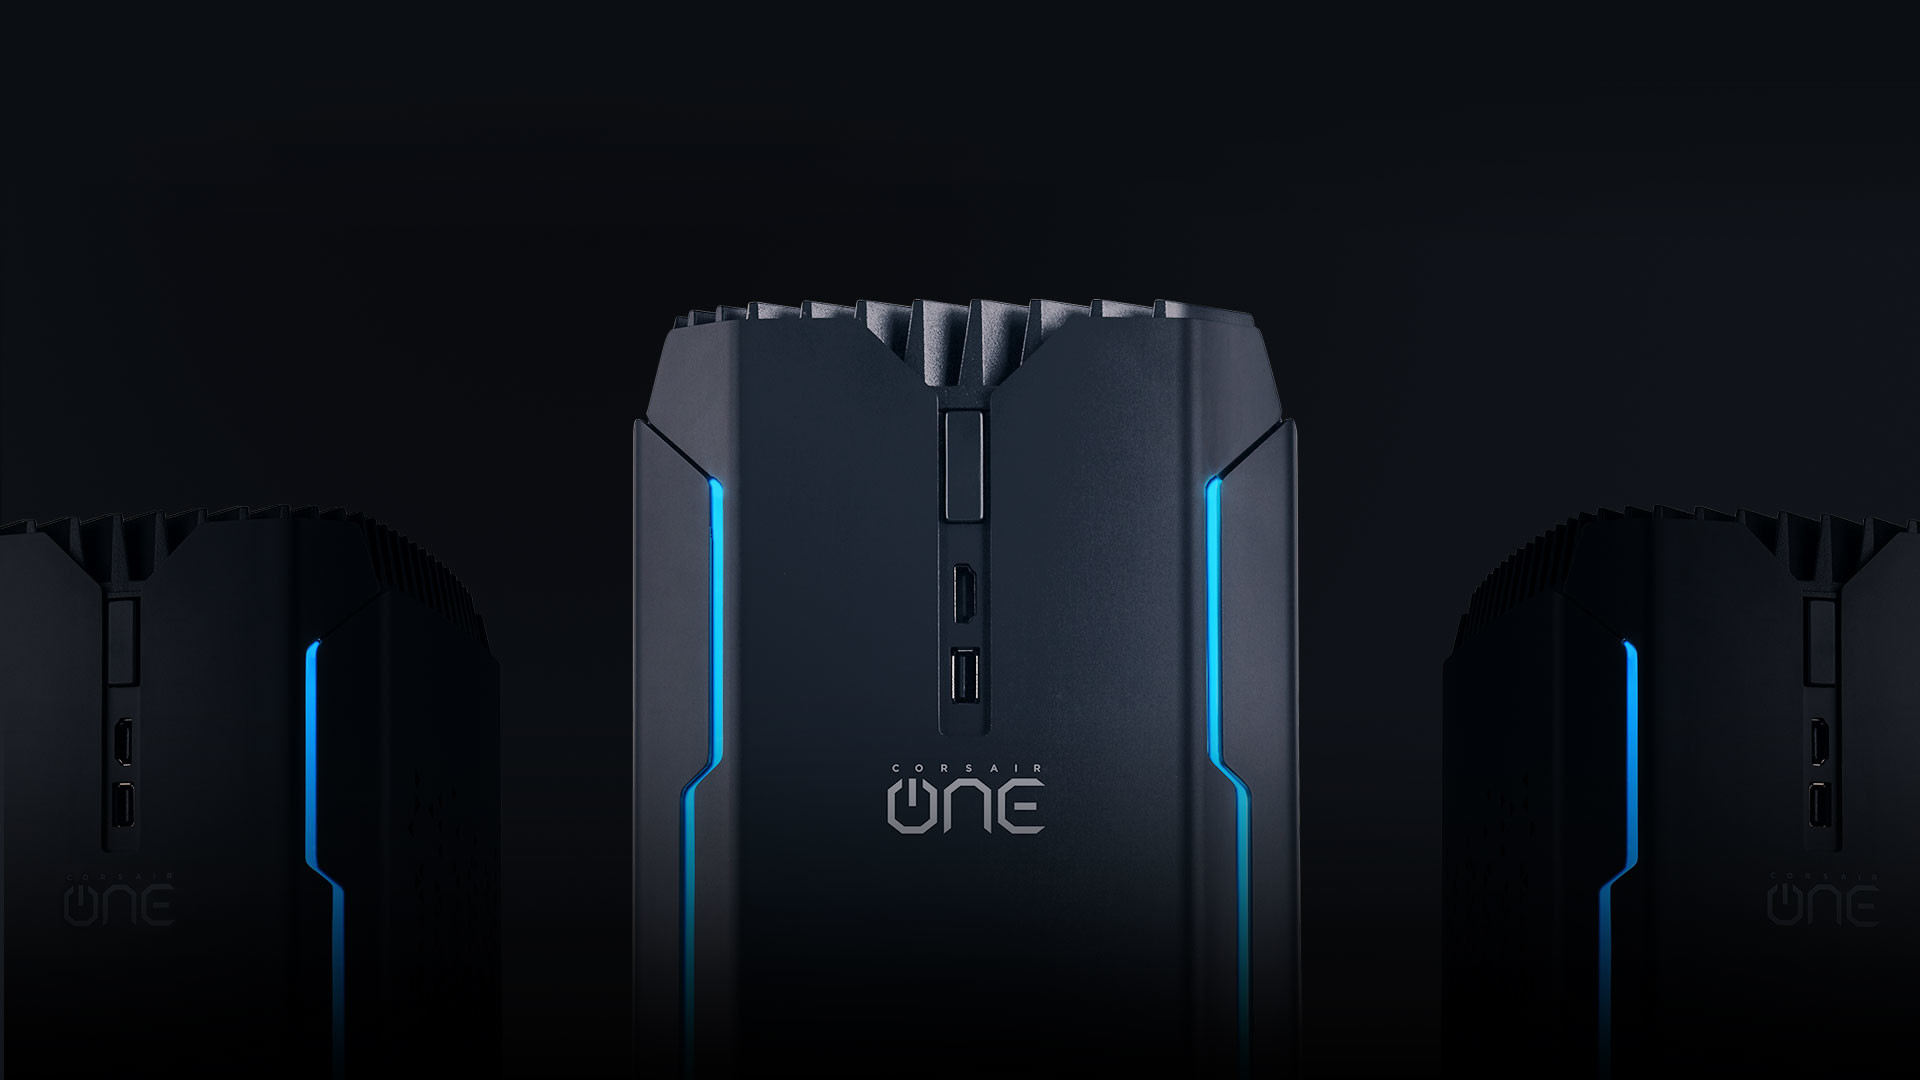 """Corsair has announced it's building a """"category-defying"""" gaming PC called  the Corsair One. The US company is famous for producing dedicated PC gaming  …"""